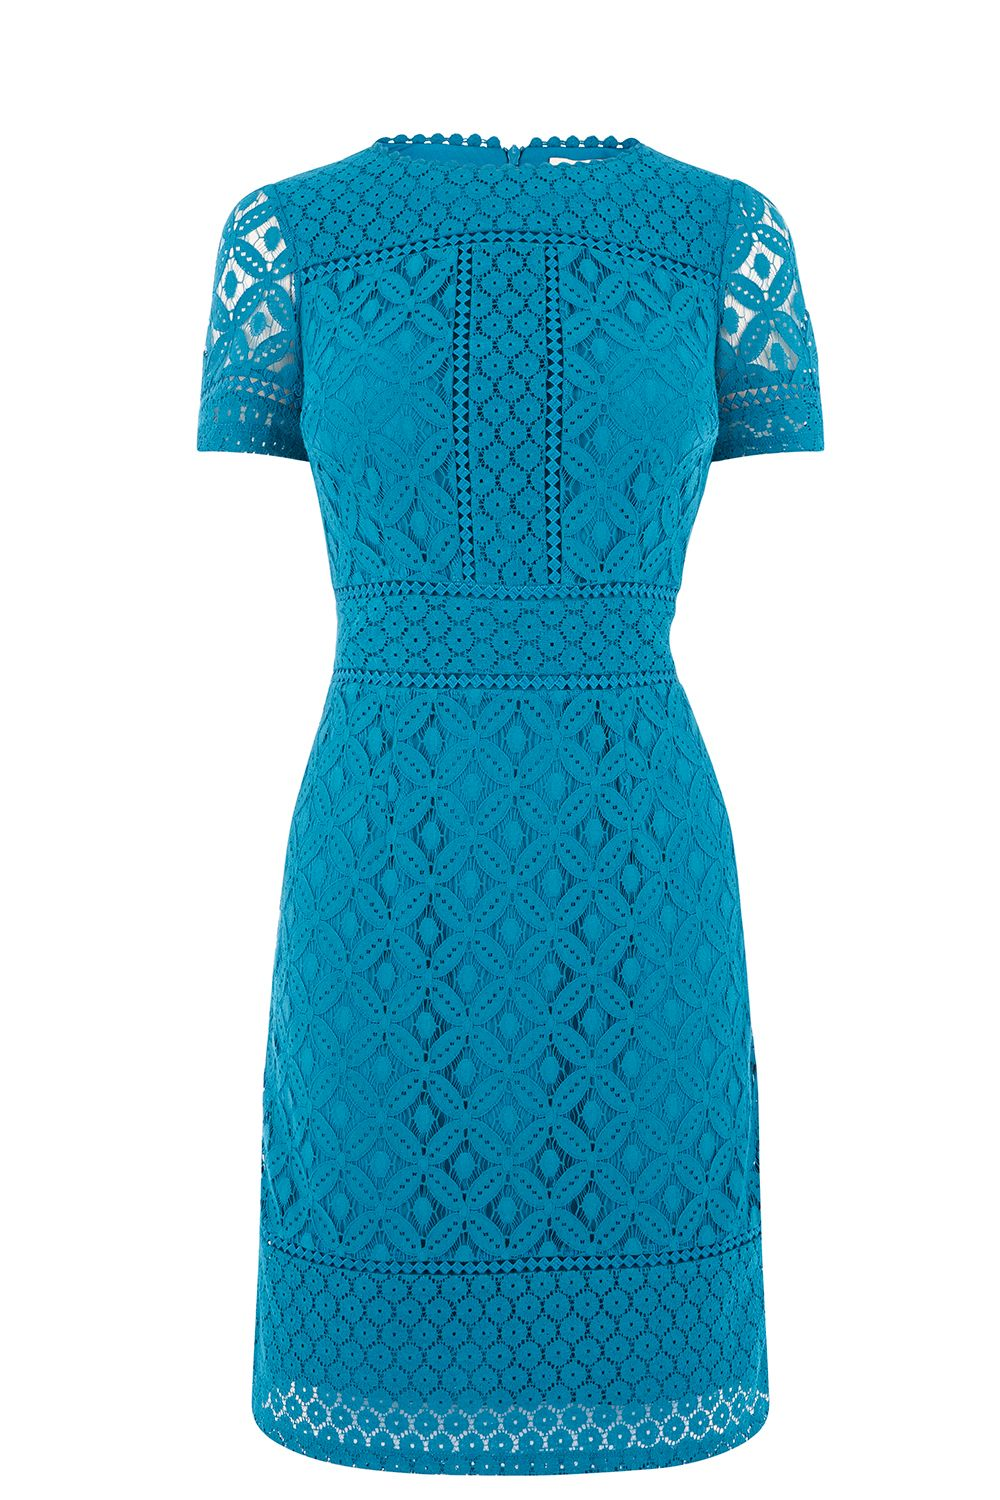 Oasis LONG ISLA LACE SHIFT DRESS, Turquoise